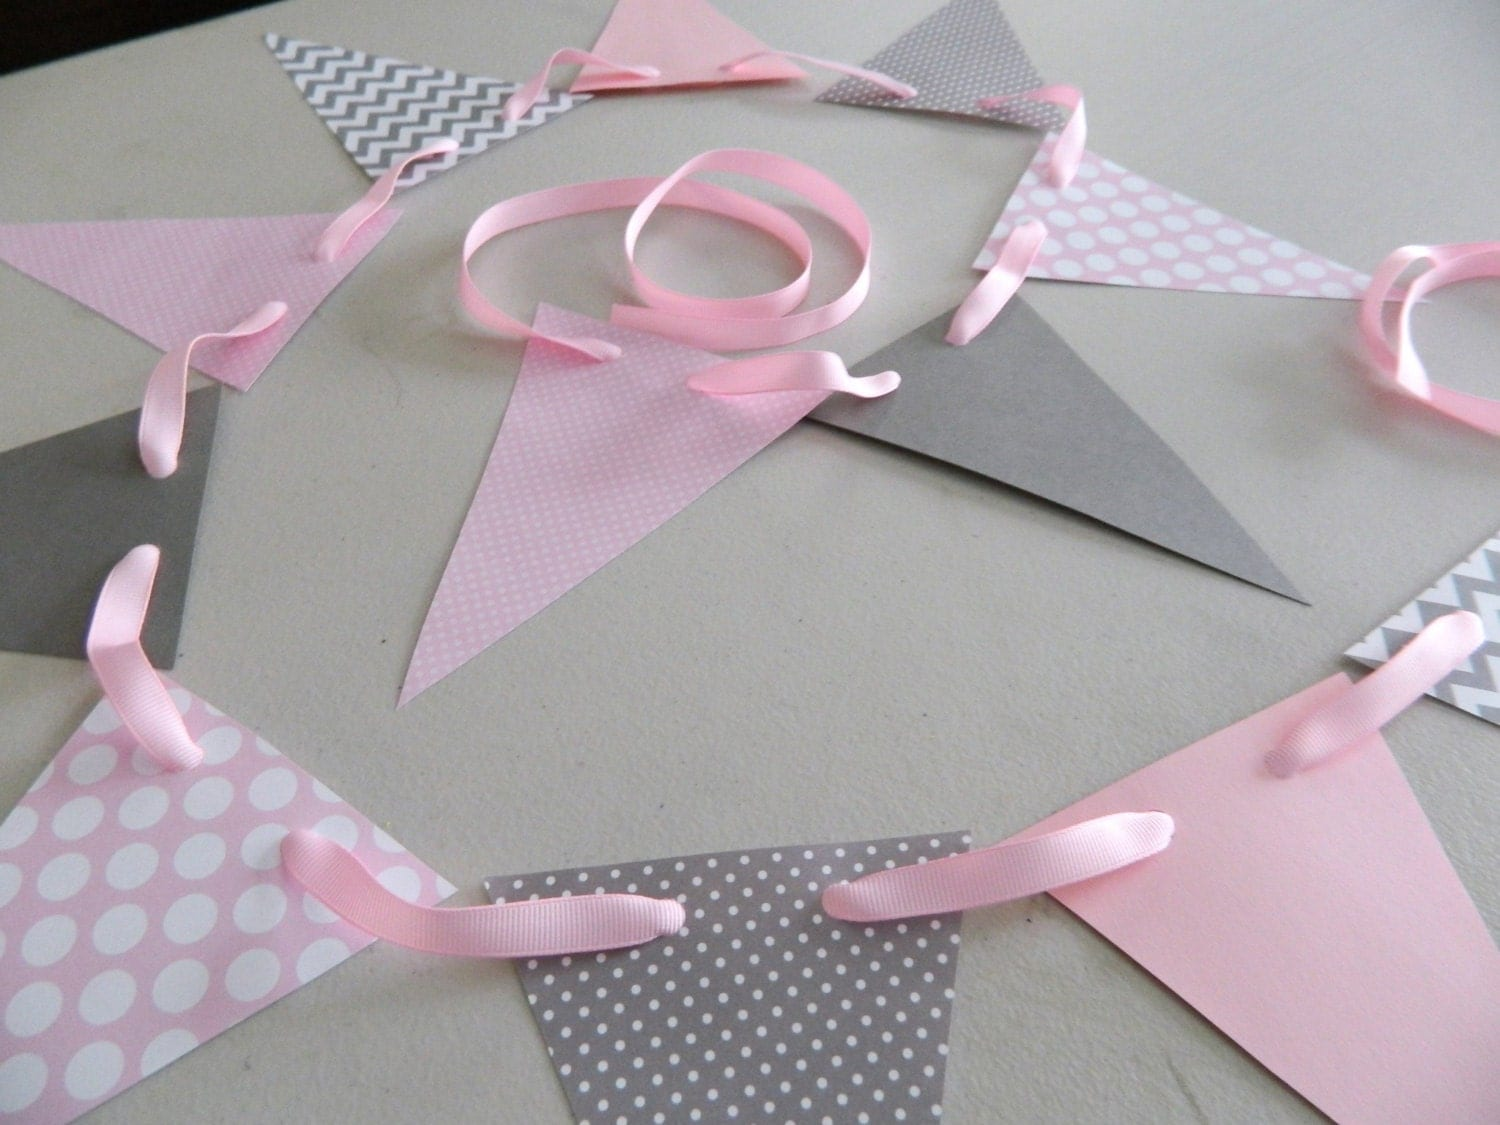 Baby shower decorations pink and gray chevron stripes paper - Baby shower chevron decorations ...